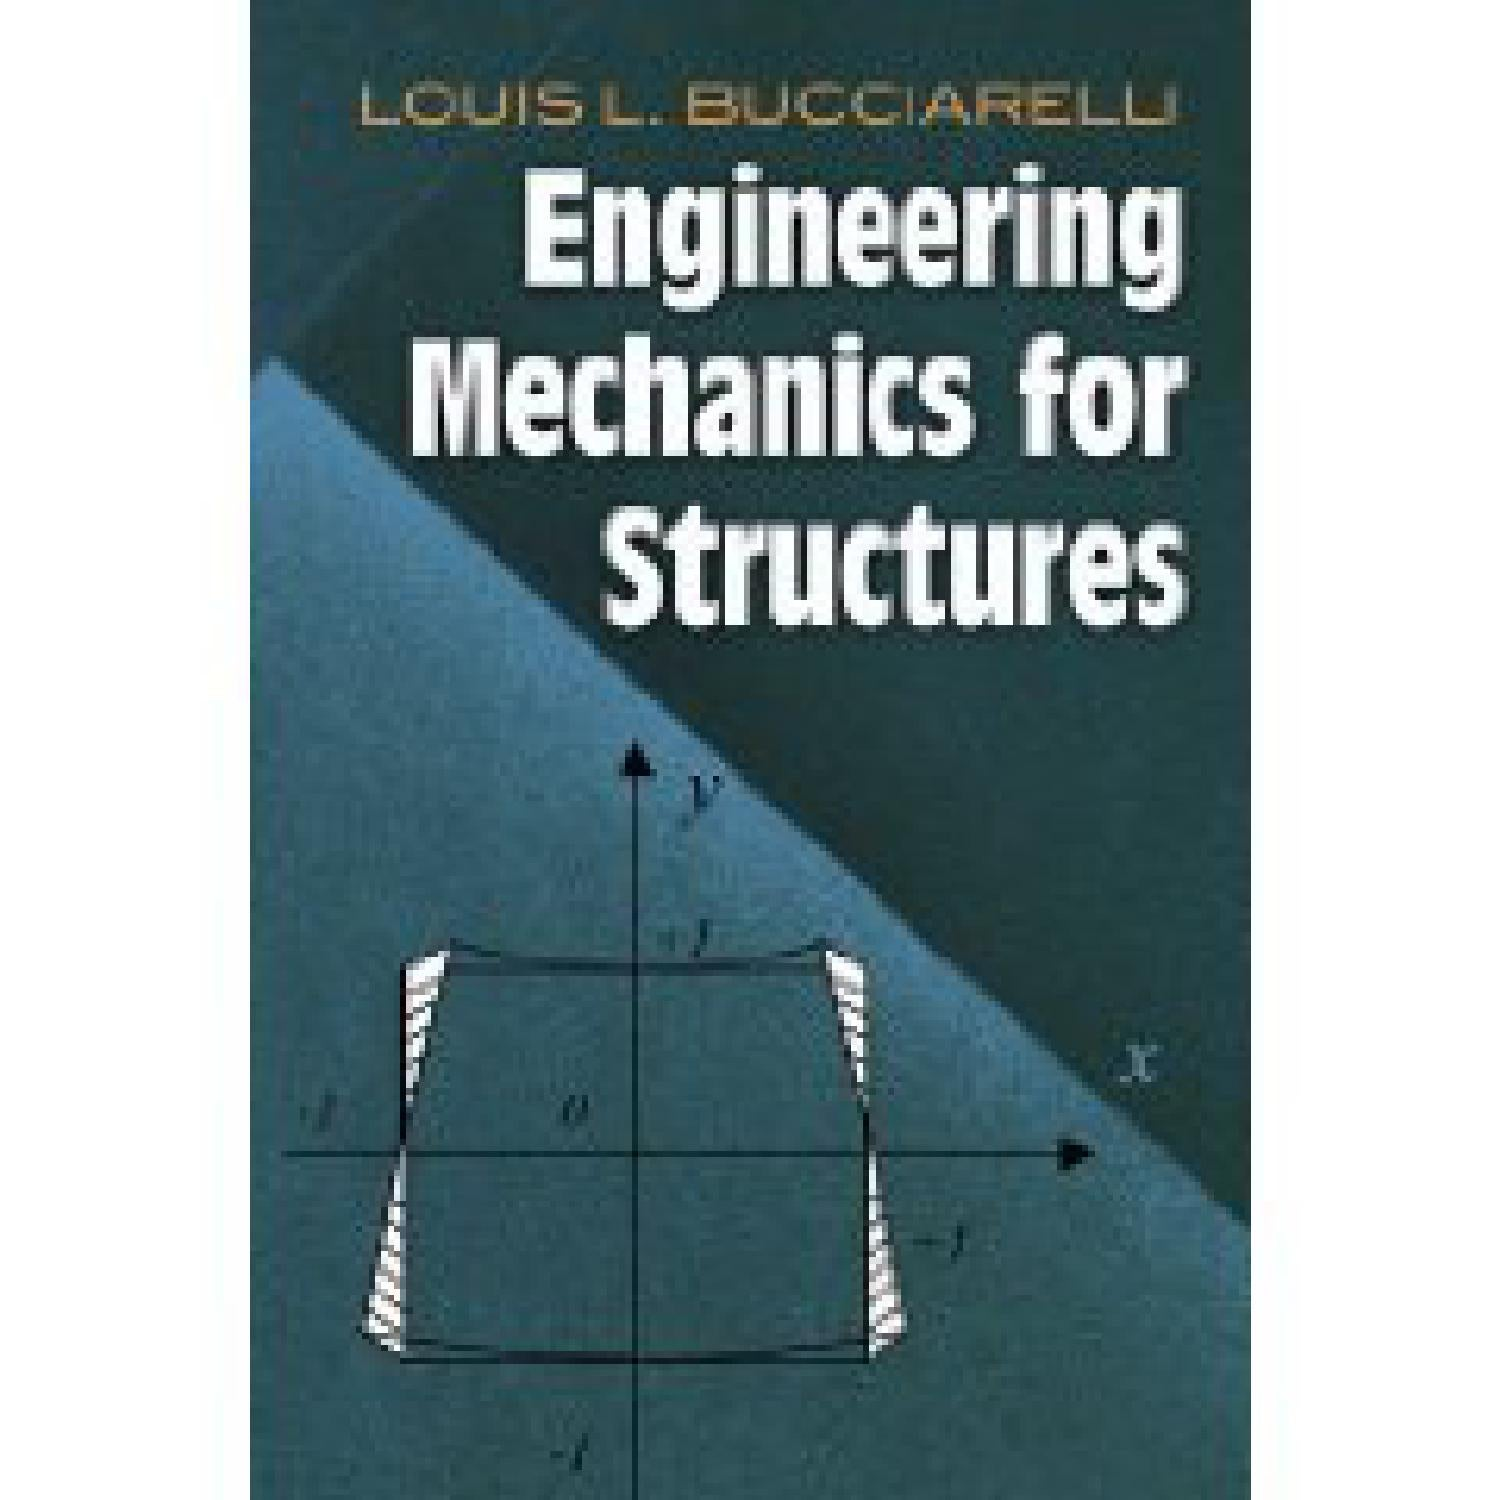 Engineering Mechanics For Structures 2009 Malestrom By Vanessa Shear Force And Bending Moment Diagrams Using Matlab Hartley Issuu